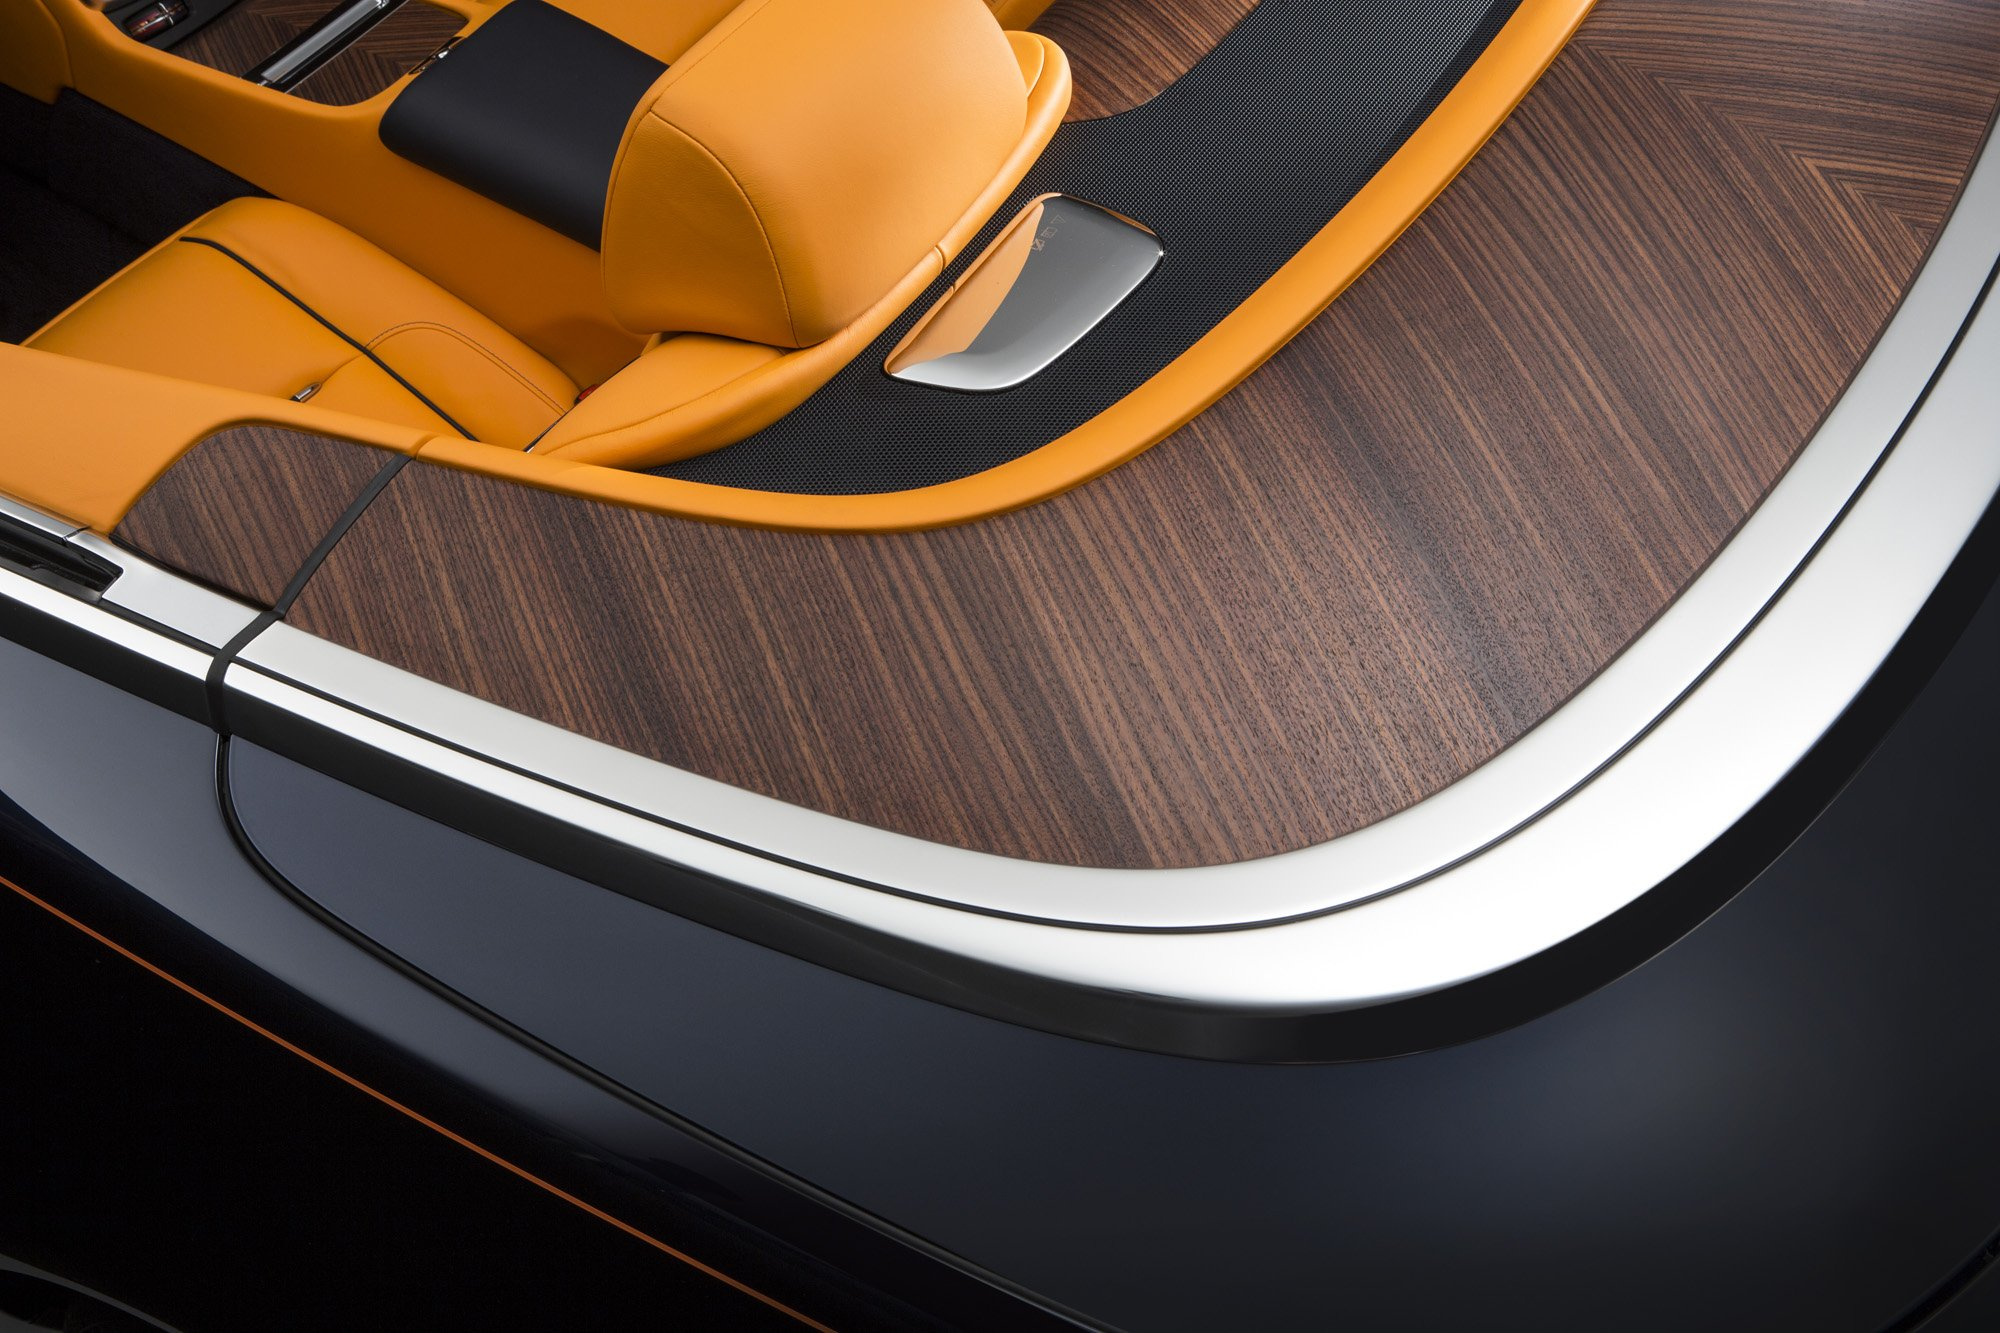 Rolls-Royce 2015 Drophead Dawn, here showing the hand crafted mirror-matched open pore wood rear deck cover shows attention to craft and detail